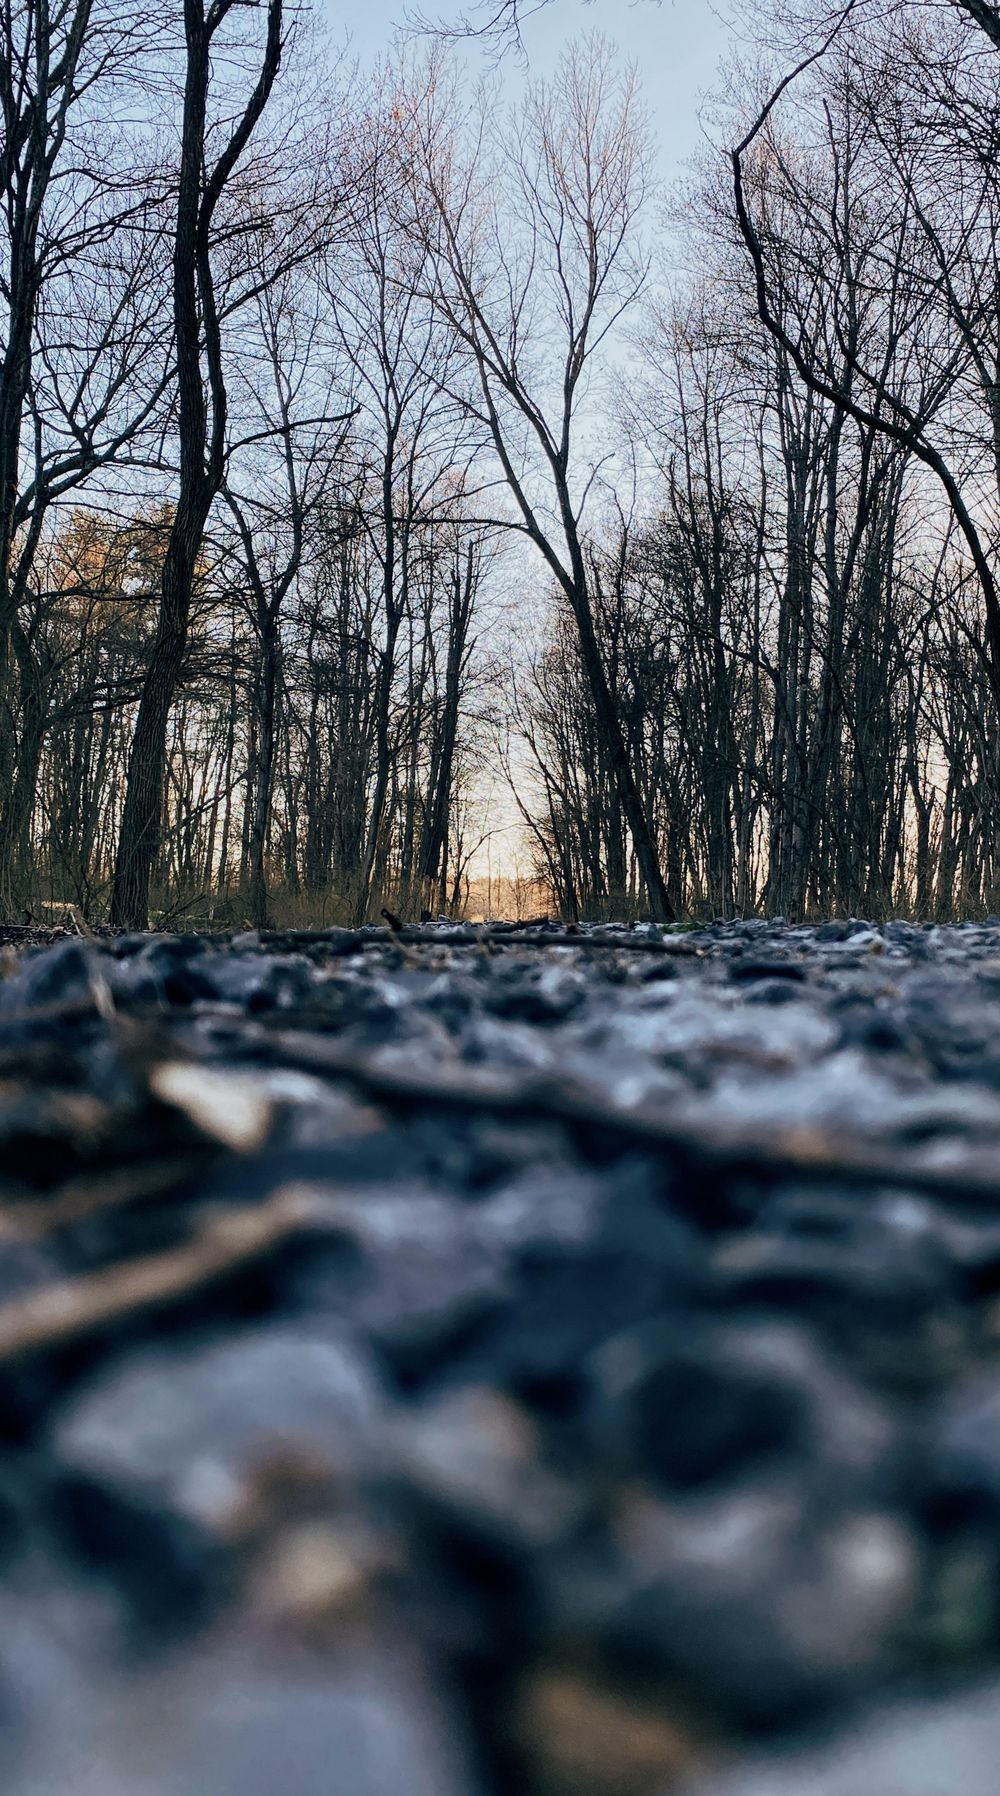 Running trail - image 1 - student project